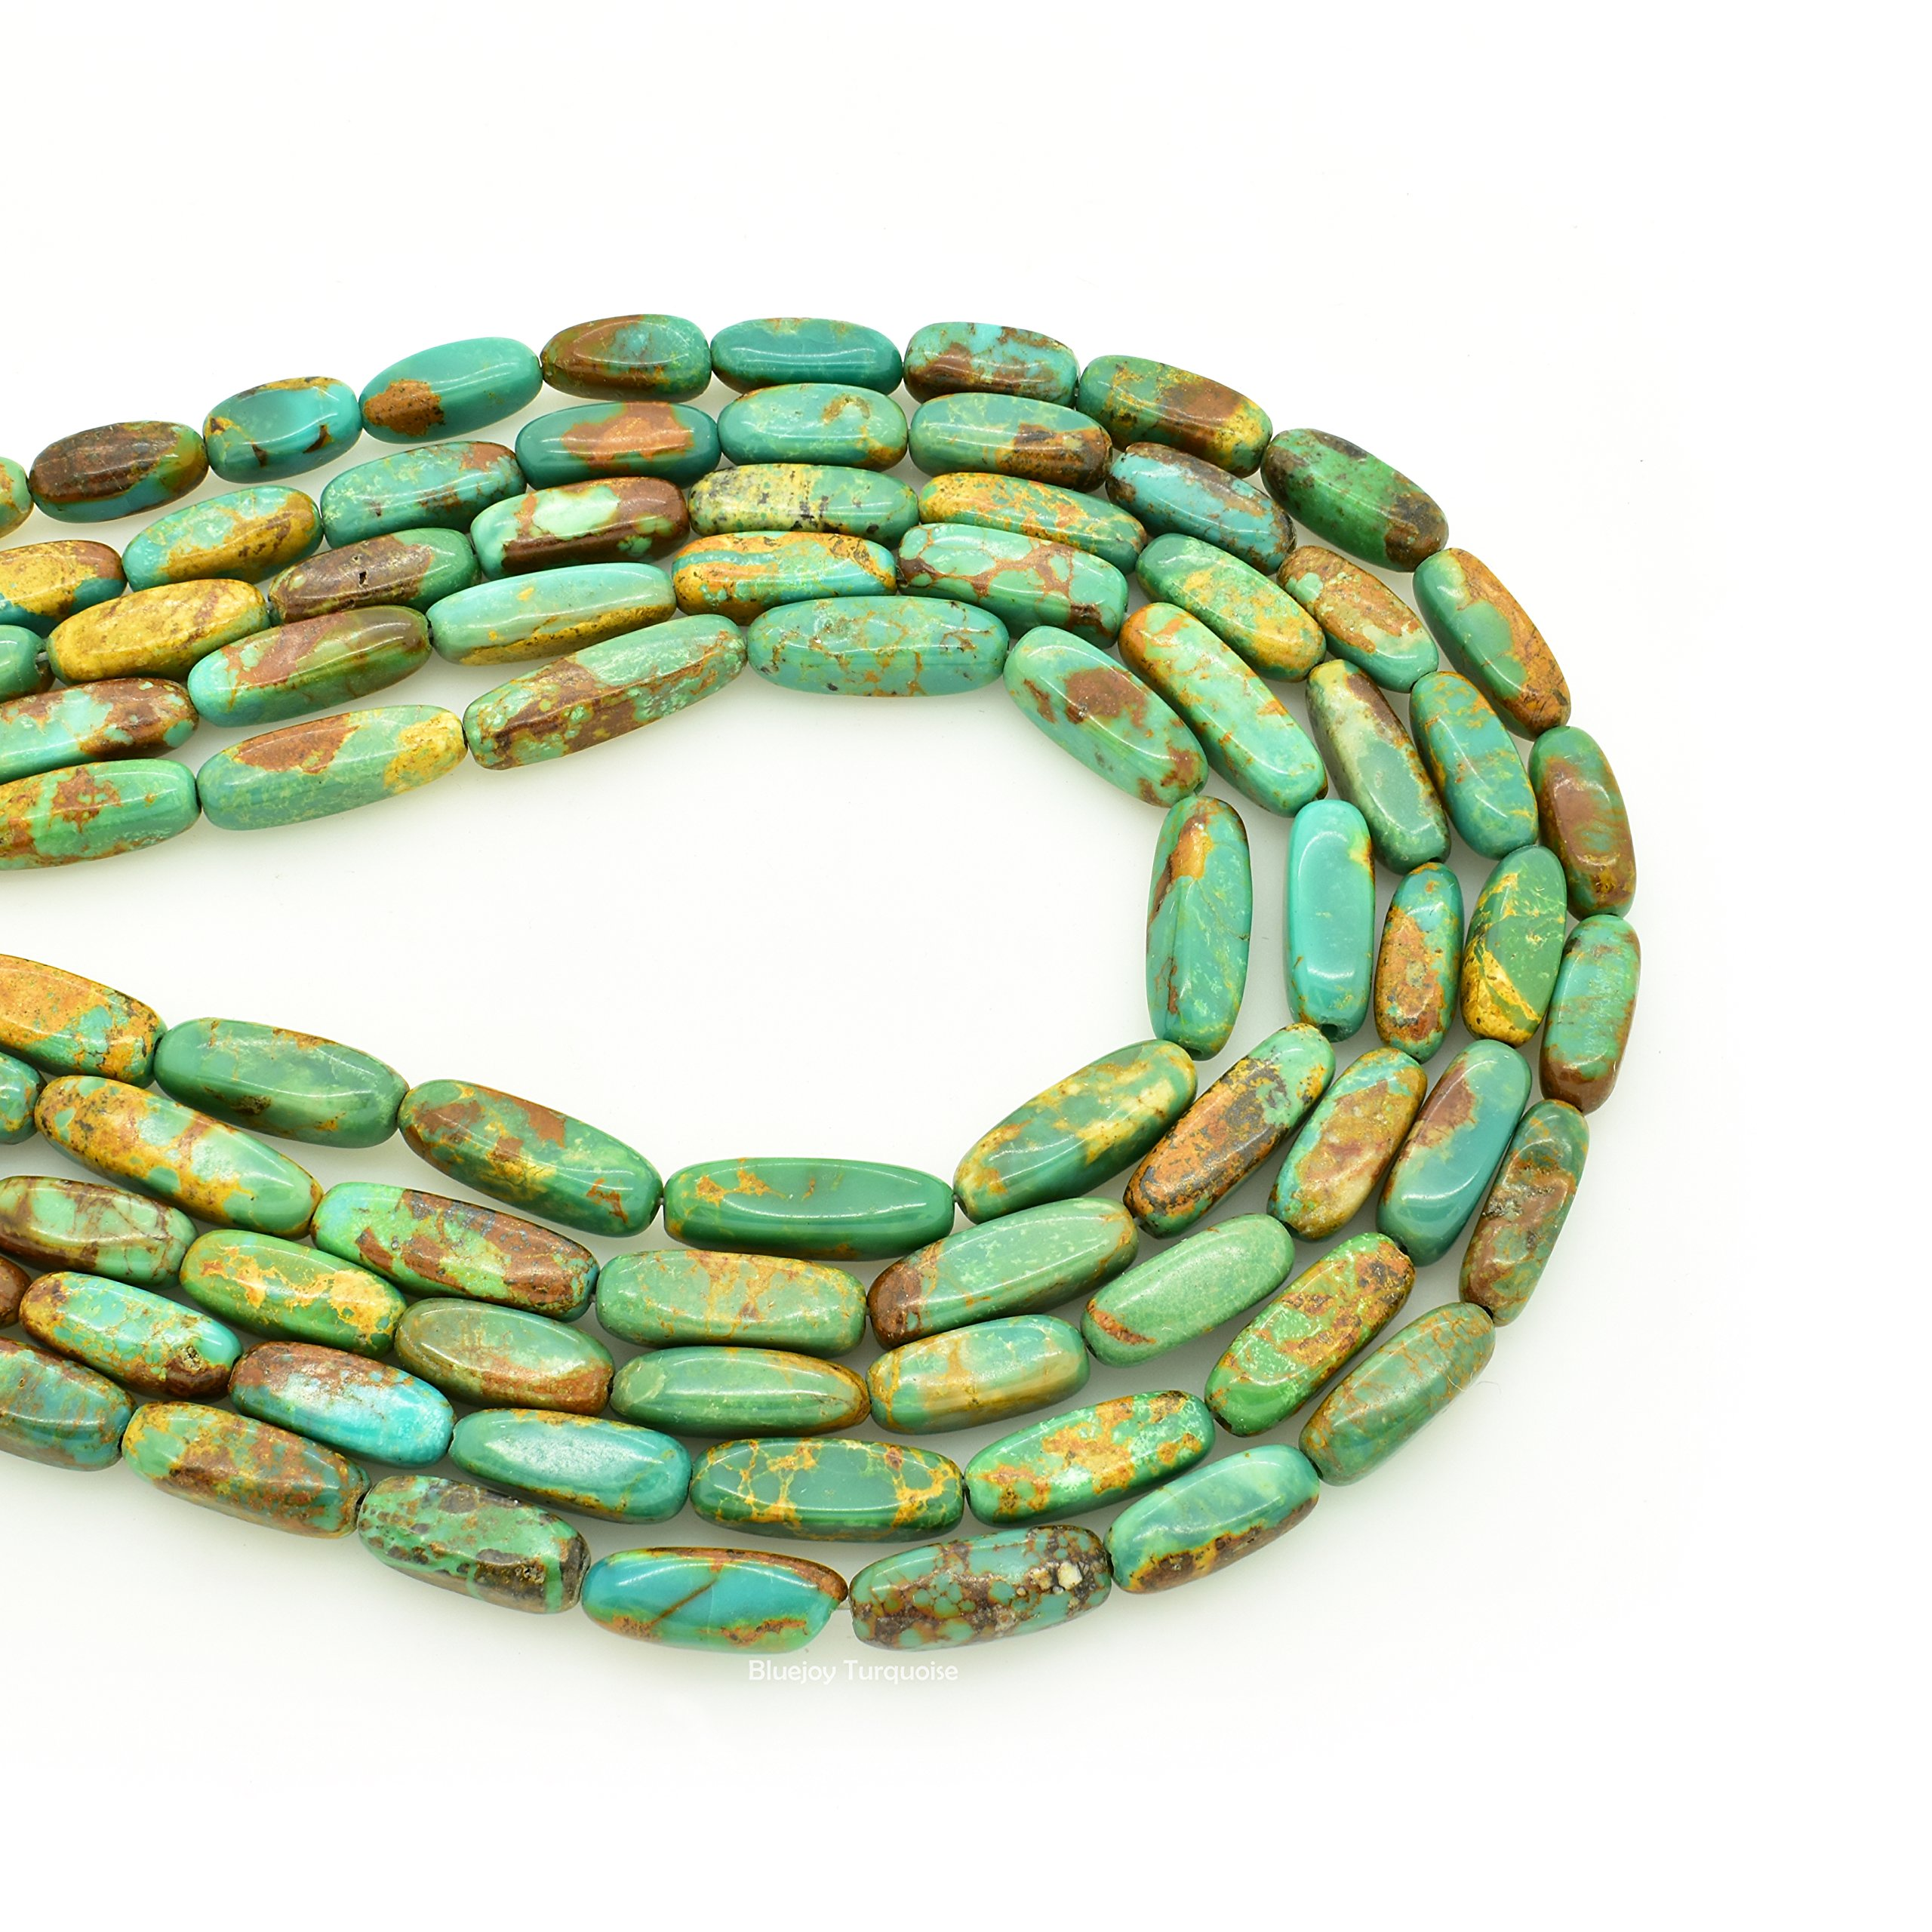 Bluejoy Genuine Natural American Turquoise Bar Shape Bead 16 inch Strand for Jewelry Making (5x12mm)